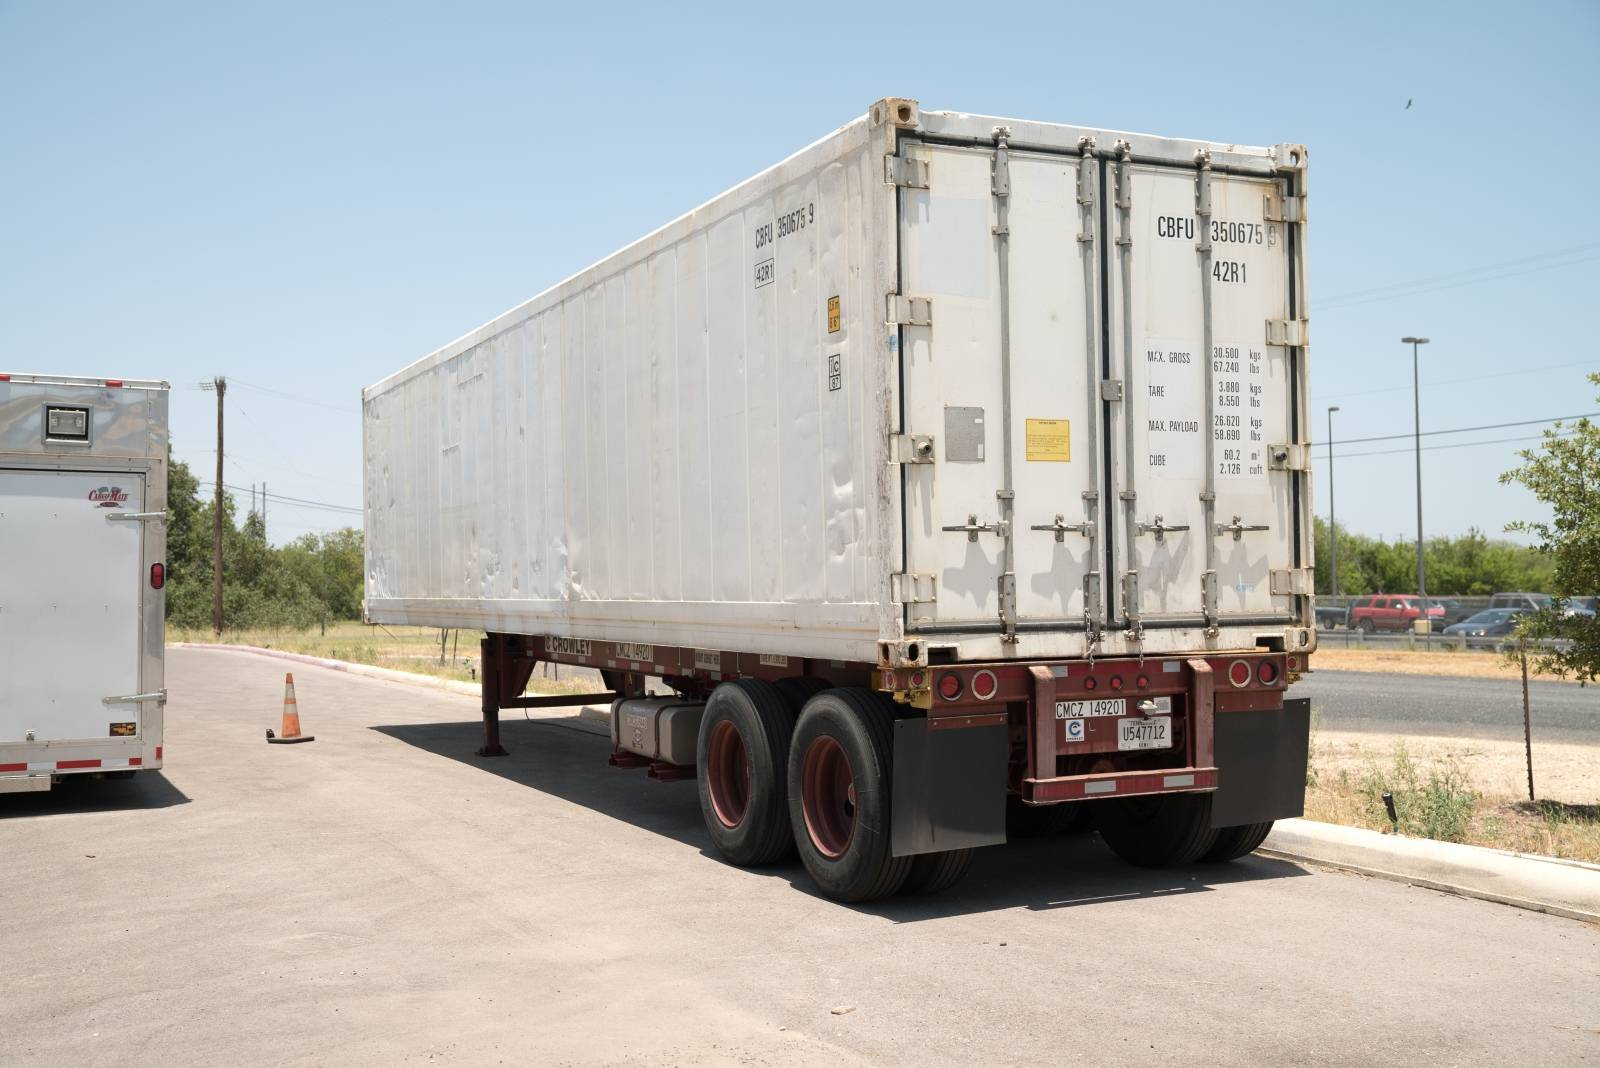 Pandemic-hit Arizona, Texas counties order coolers, refrigerated trucks for bodies